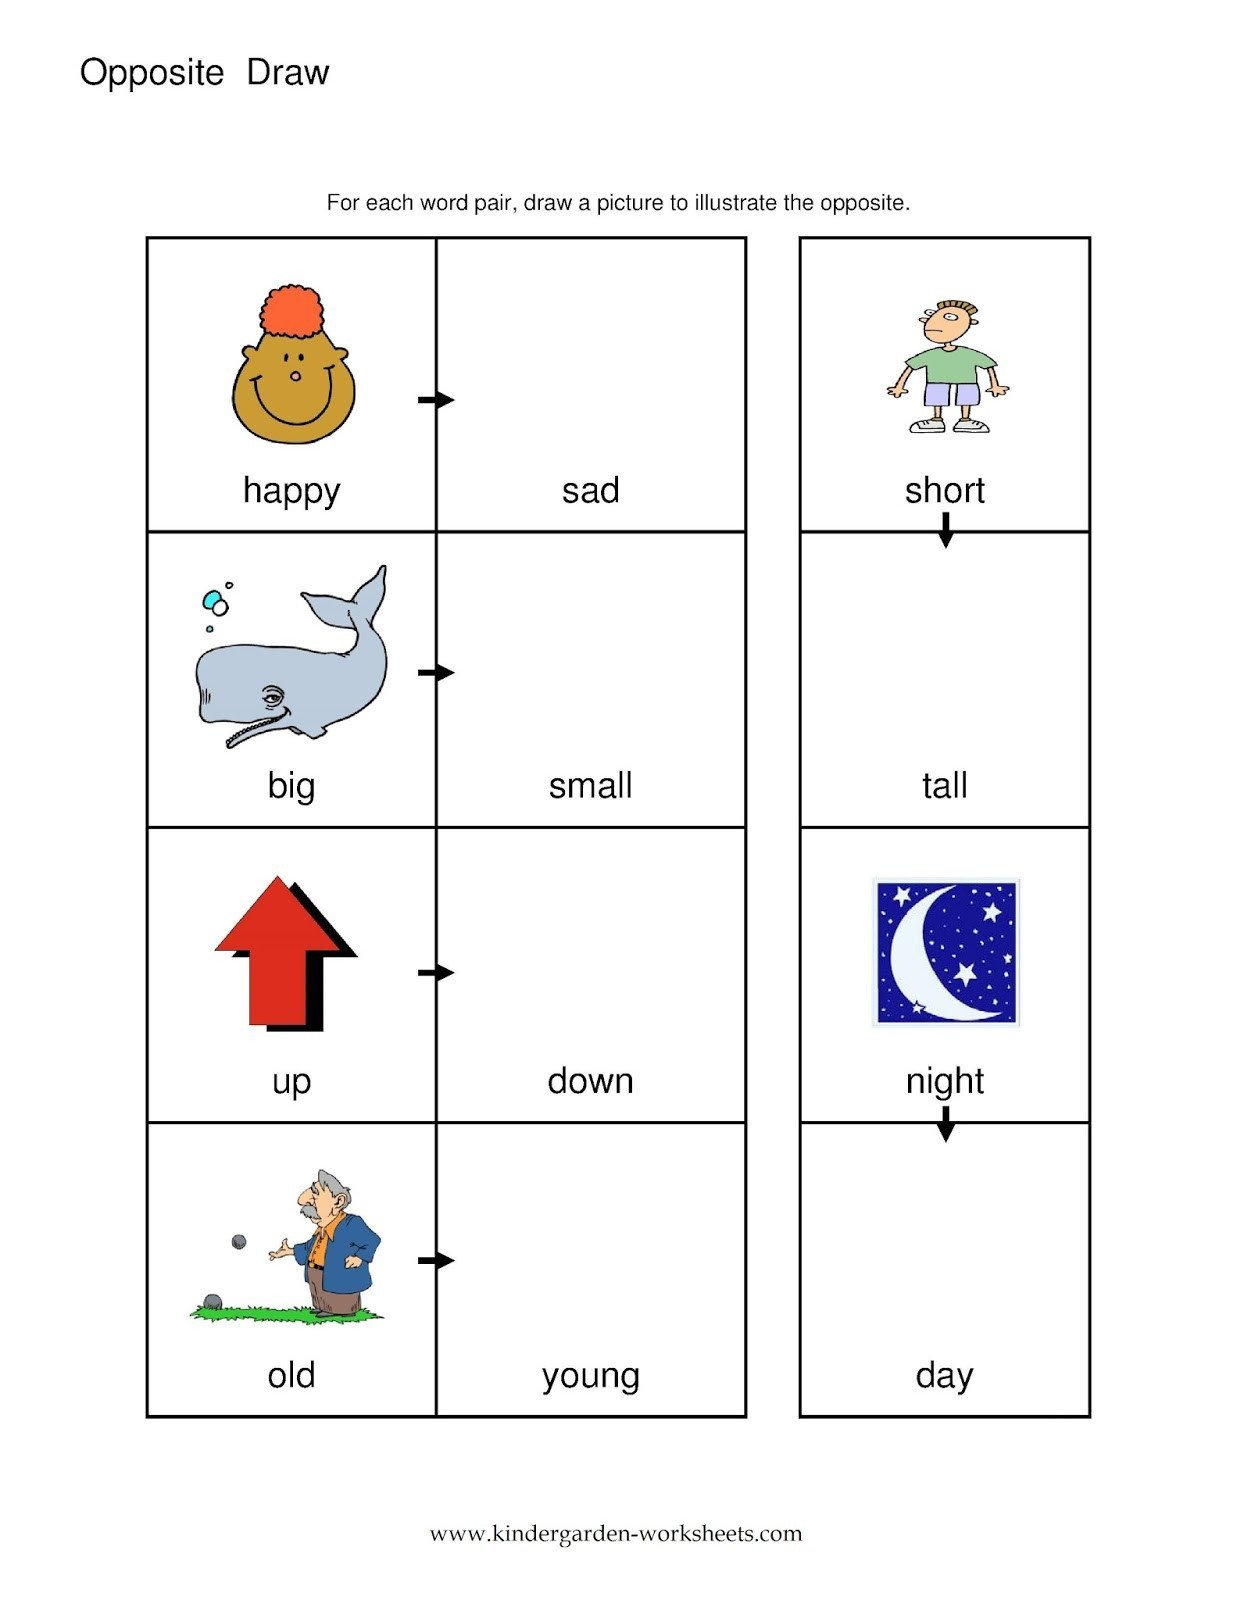 opposites worksheet for kindergarten division by 2 worksheetsopposites worksheets kindergarten of opposites worksheet for kindergarten